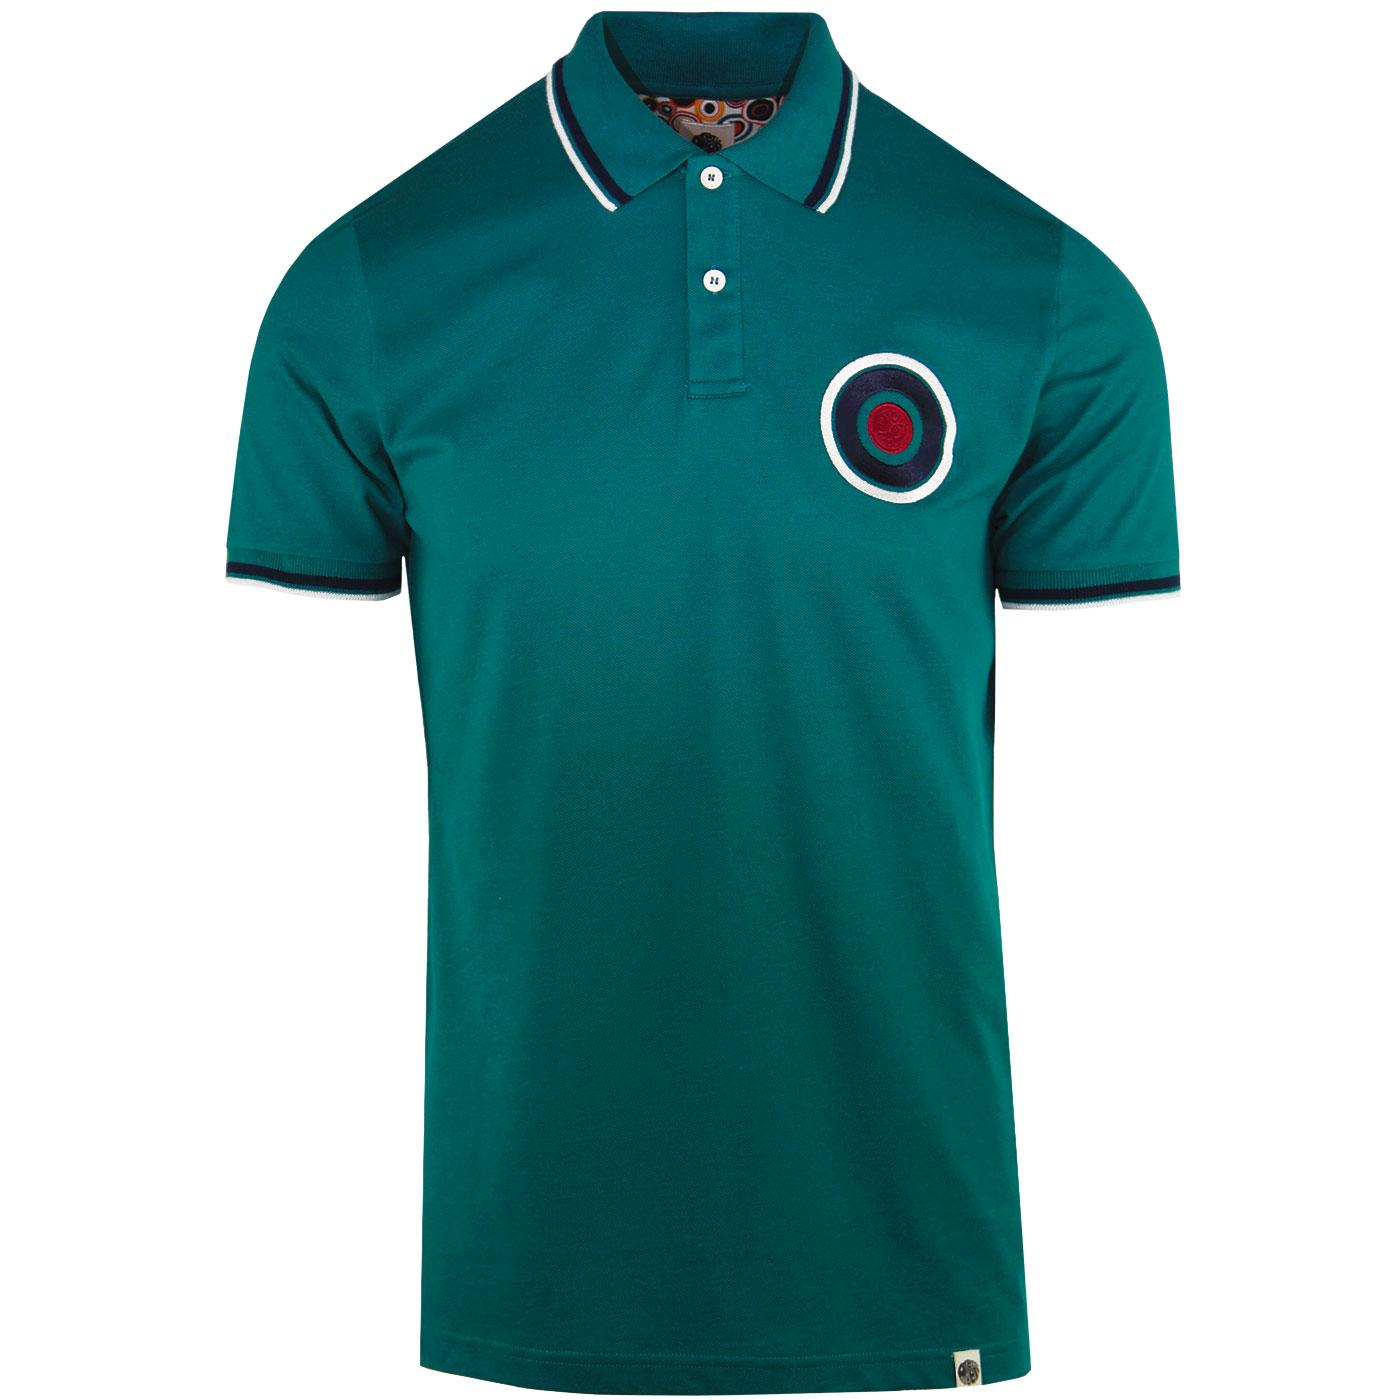 PRETTY GREEN Mod Twin Tipped Chest Target Polo T